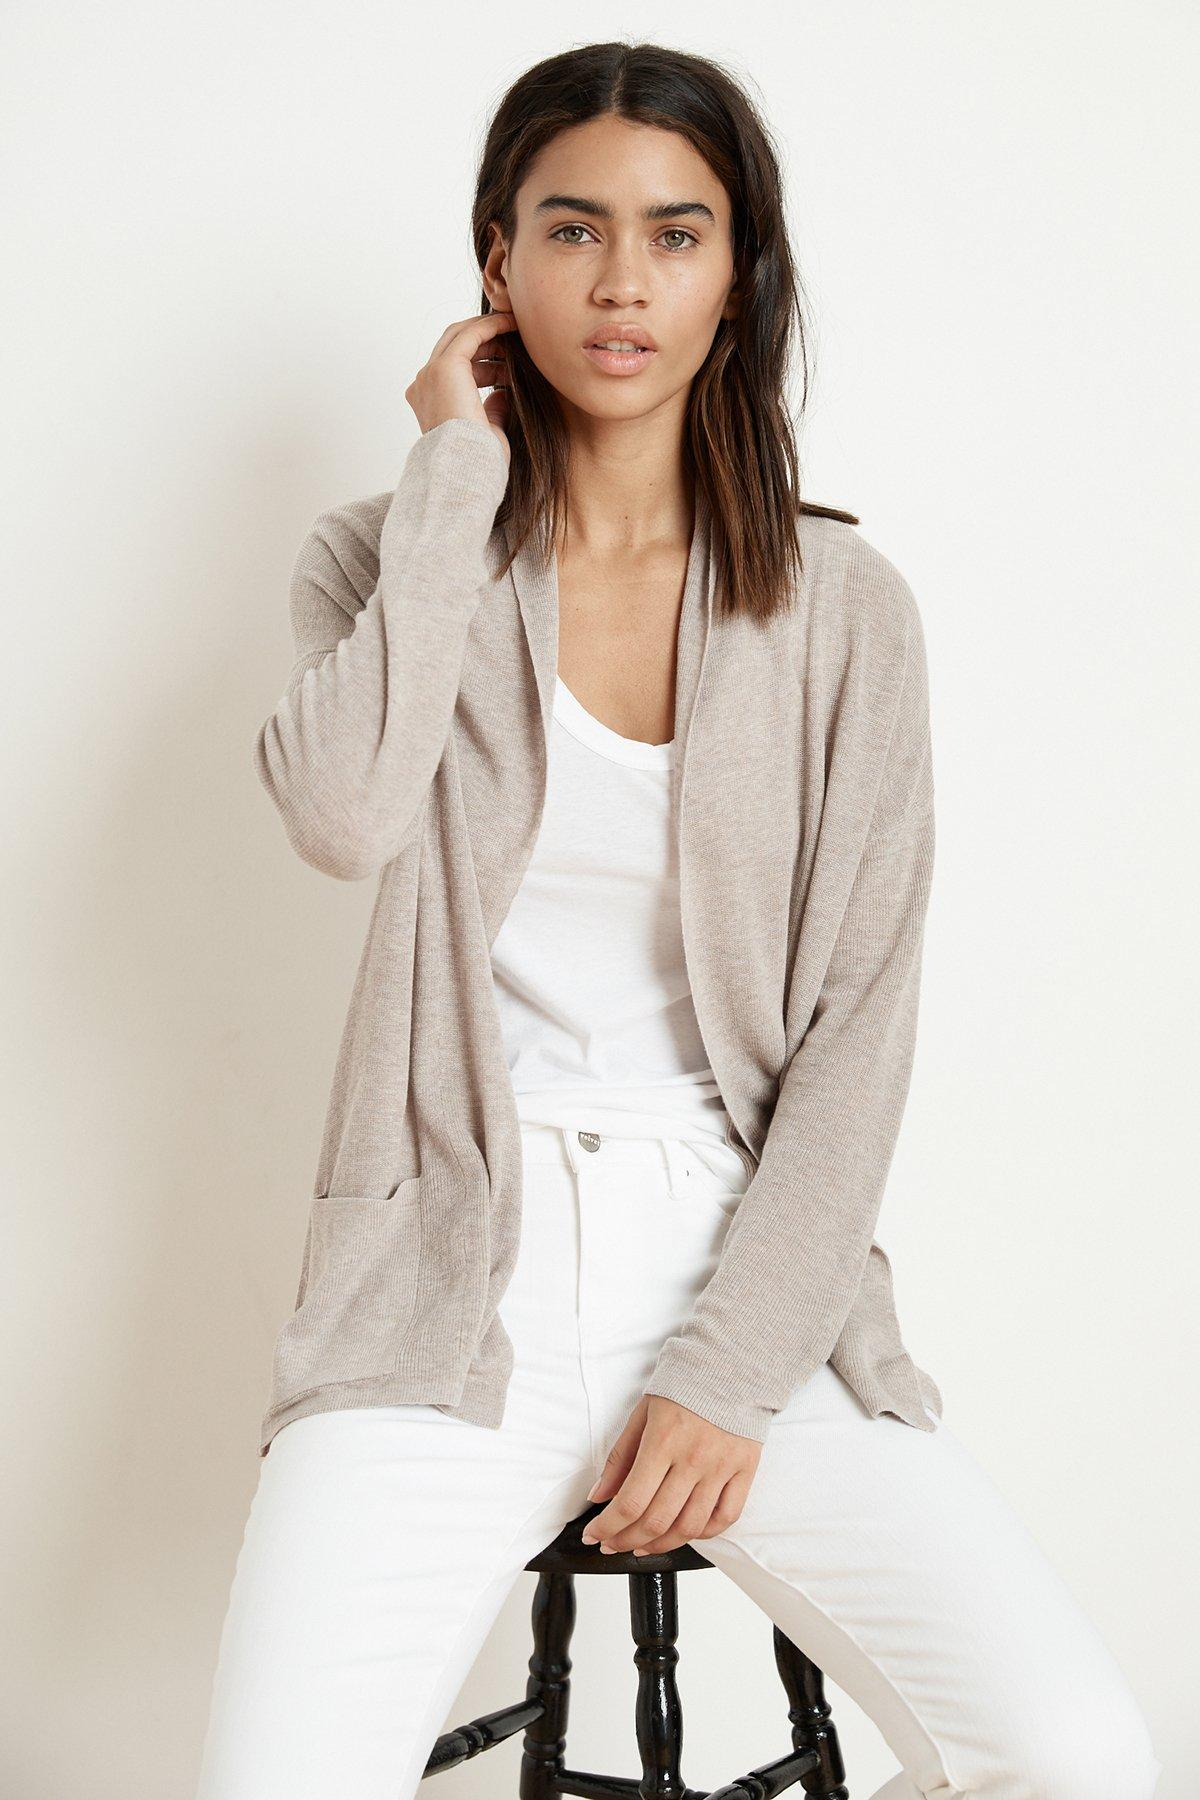 a8a1c74f427ab5 Velvet By Graham & Spencer. Women's Natural Jurnee Lux Cotton Knit Cardigan